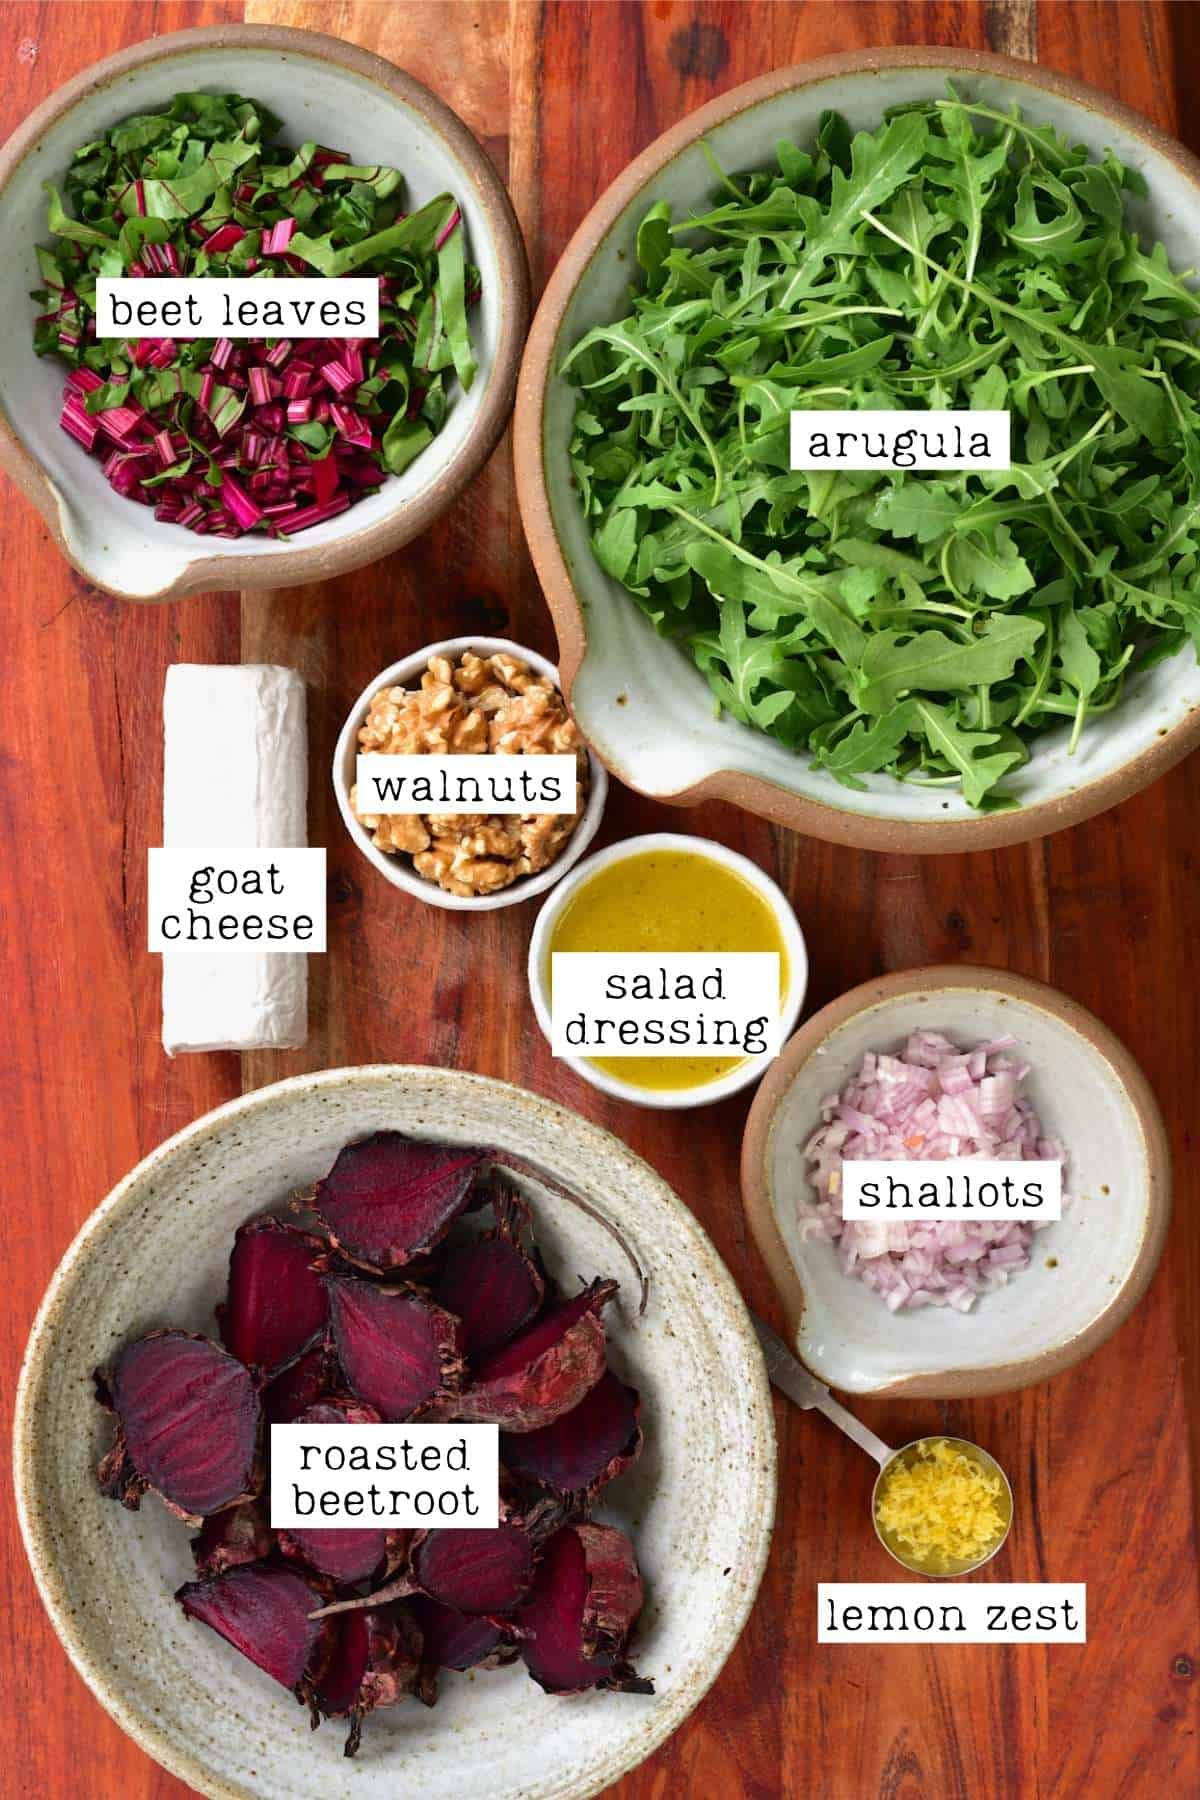 Ingredients for roasted beet salad with goat cheese